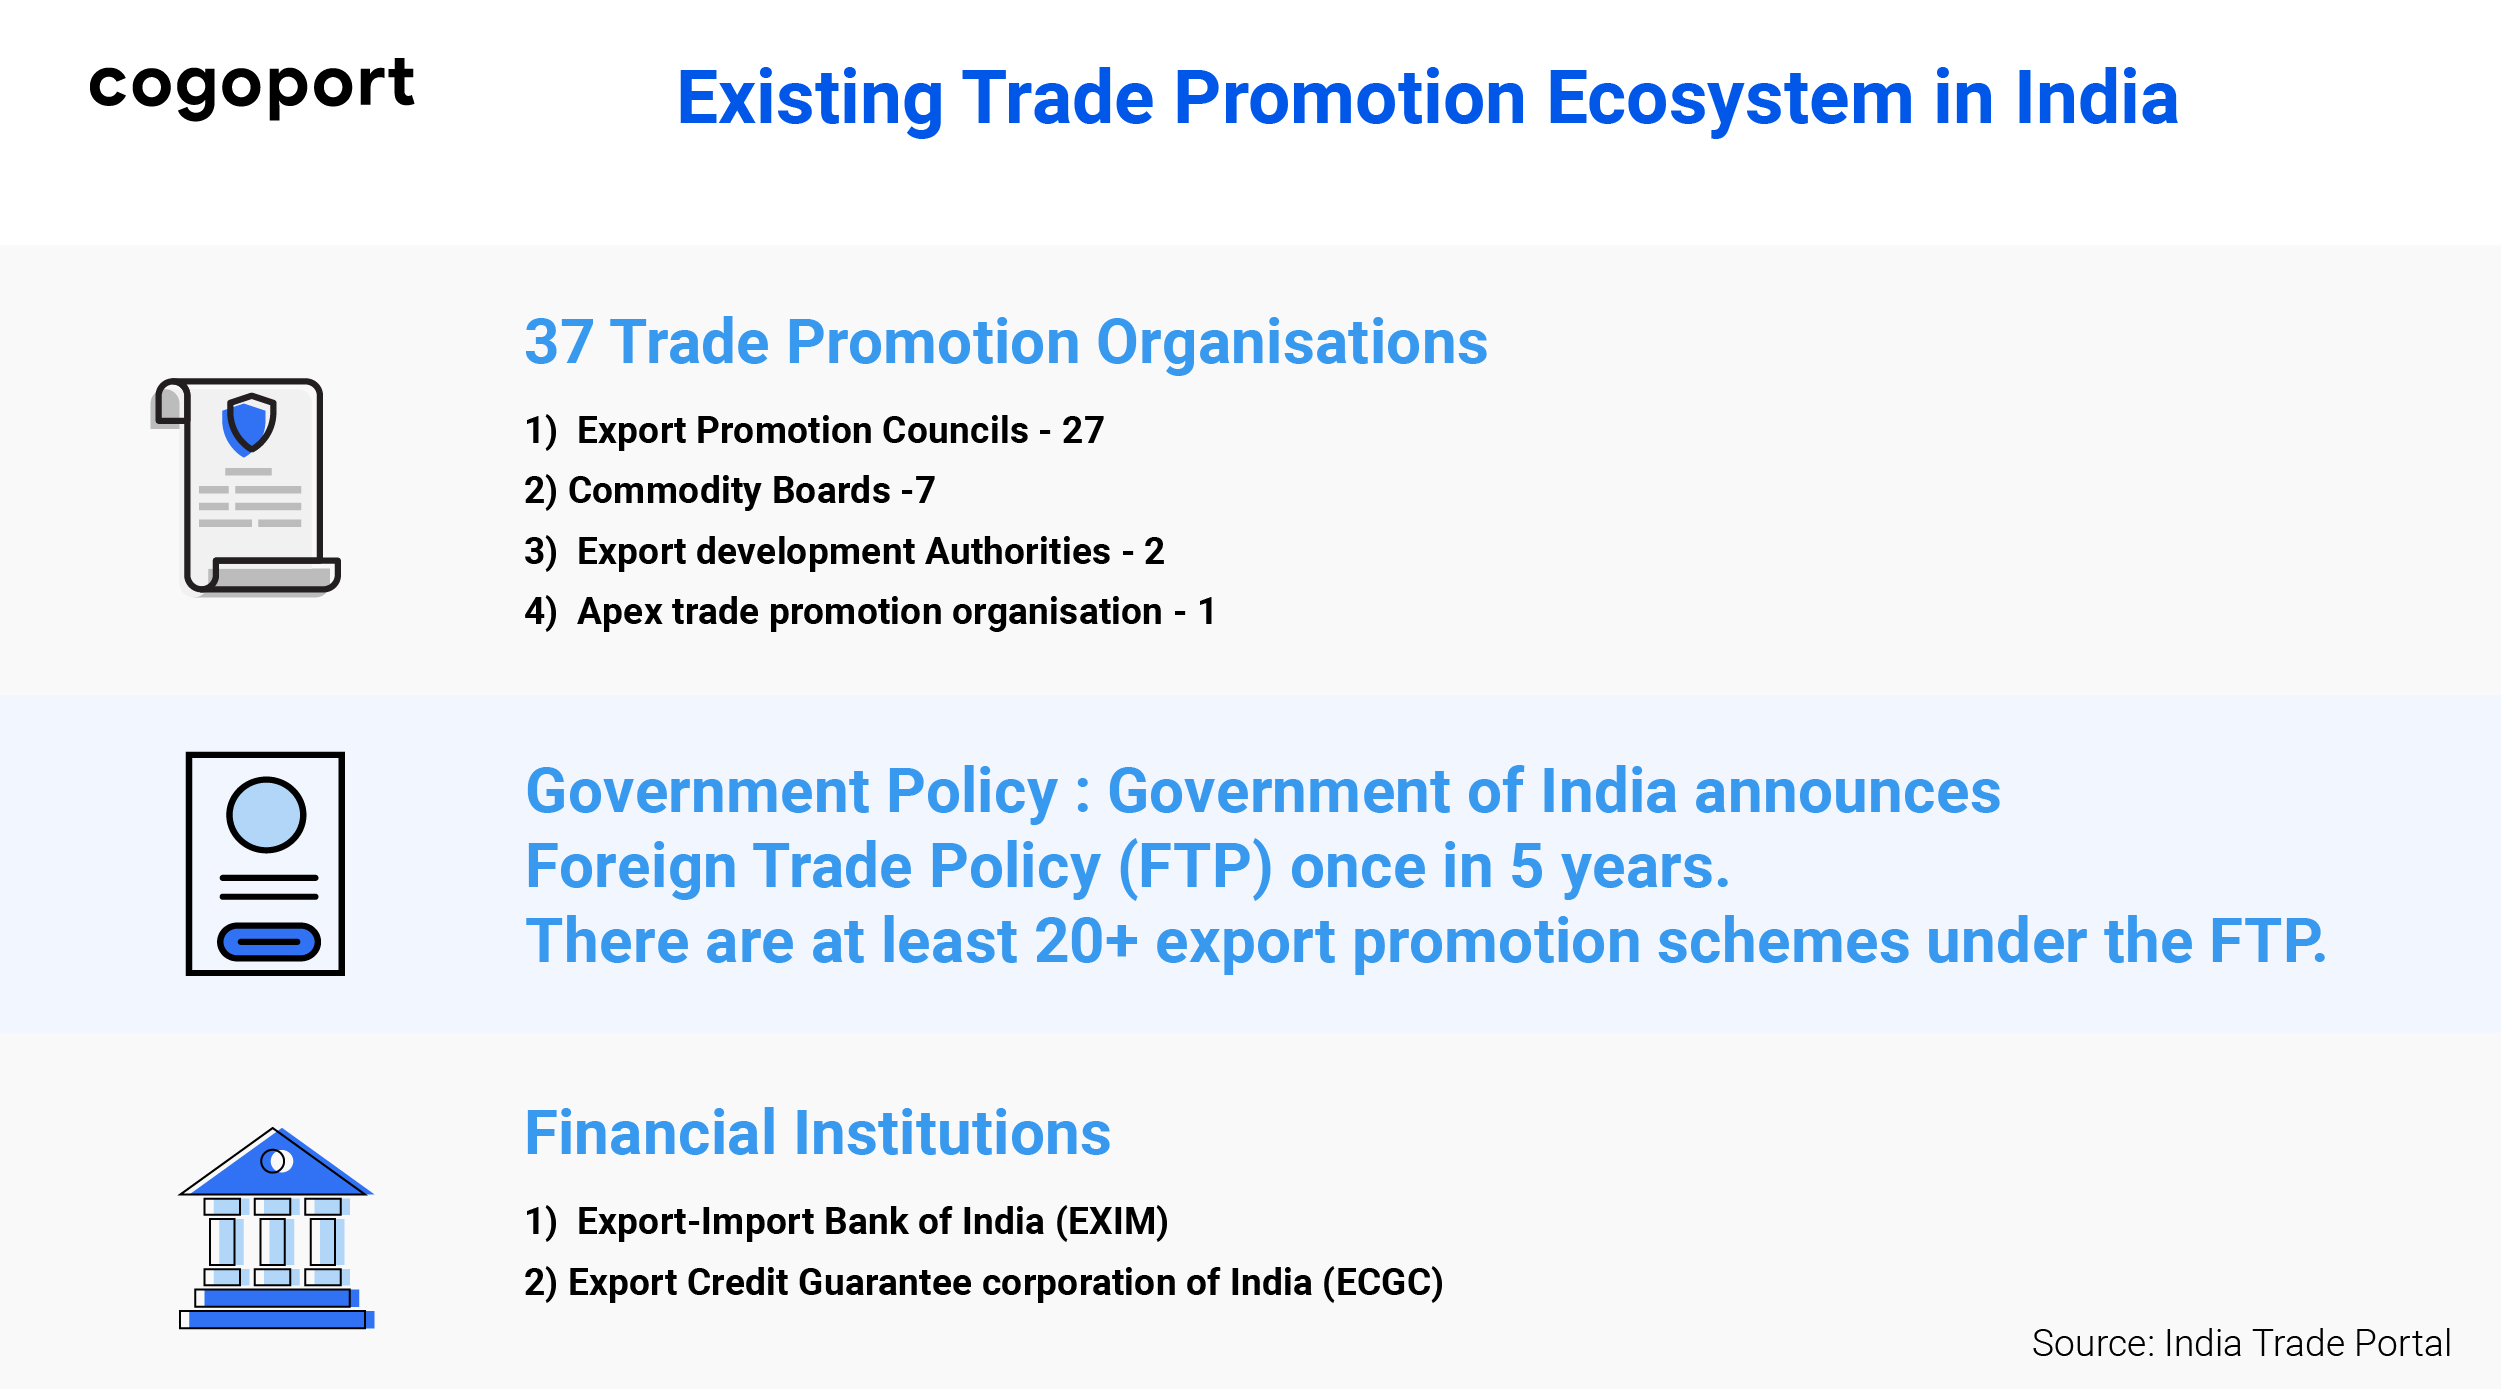 Existing export promotion eco-system in India